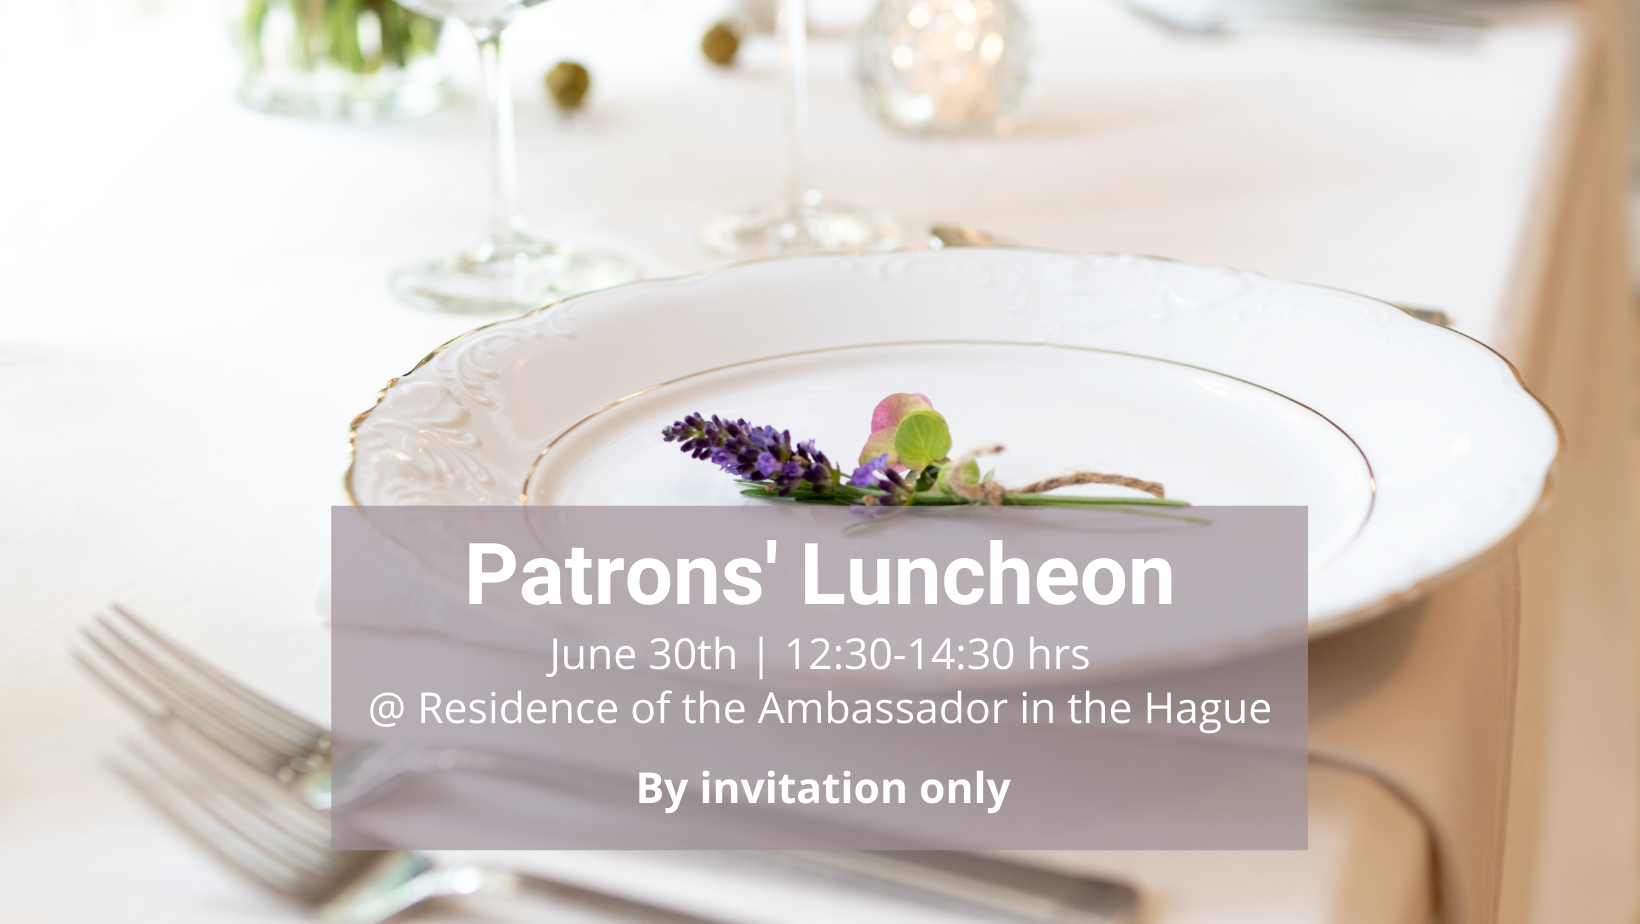 FDCC Patrons Luncheon